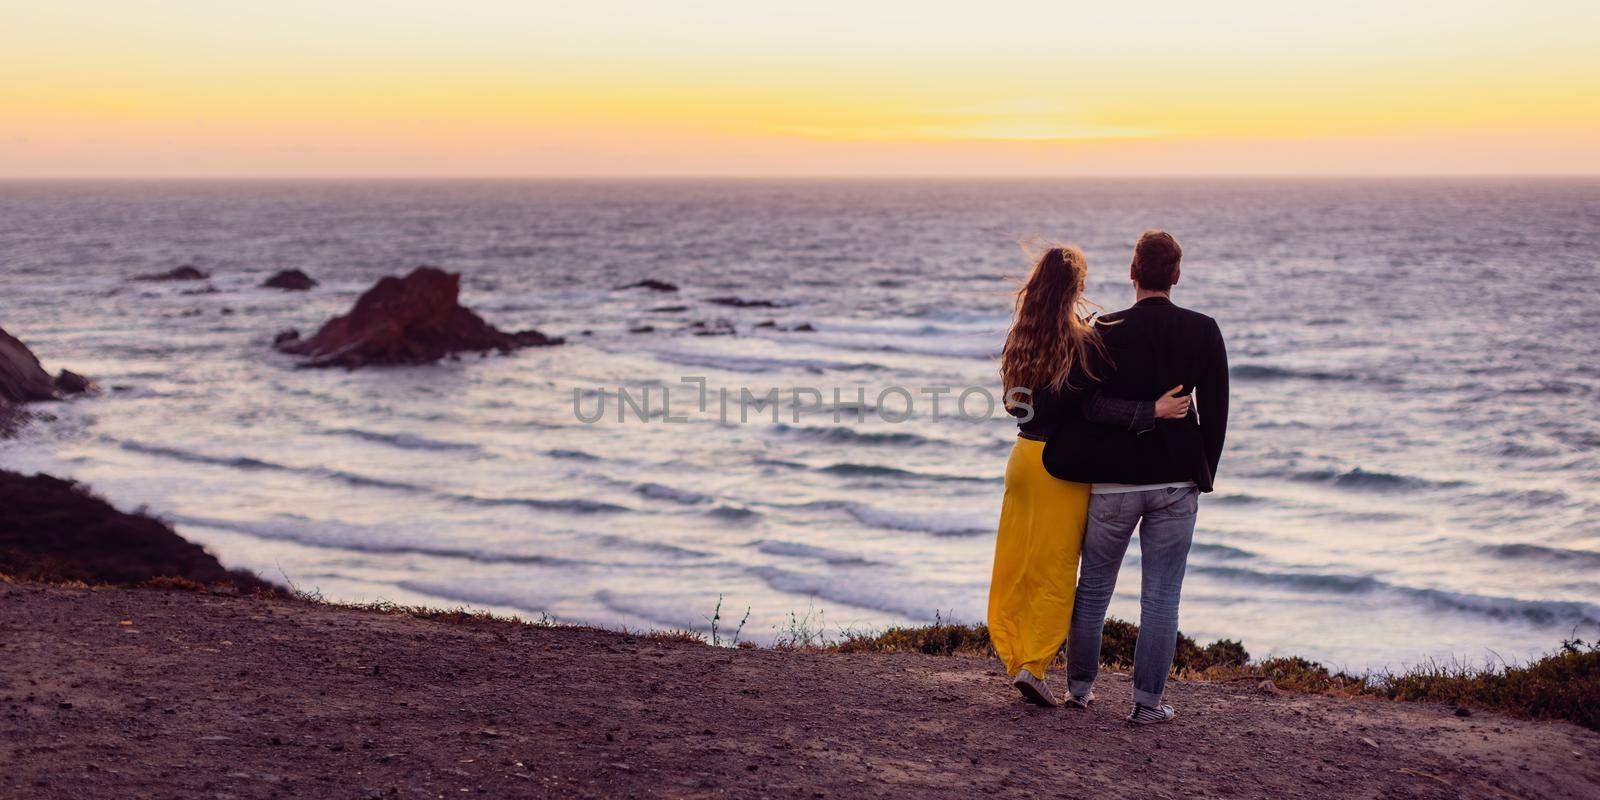 Romantic couple in love embracing each other during sunset at beach